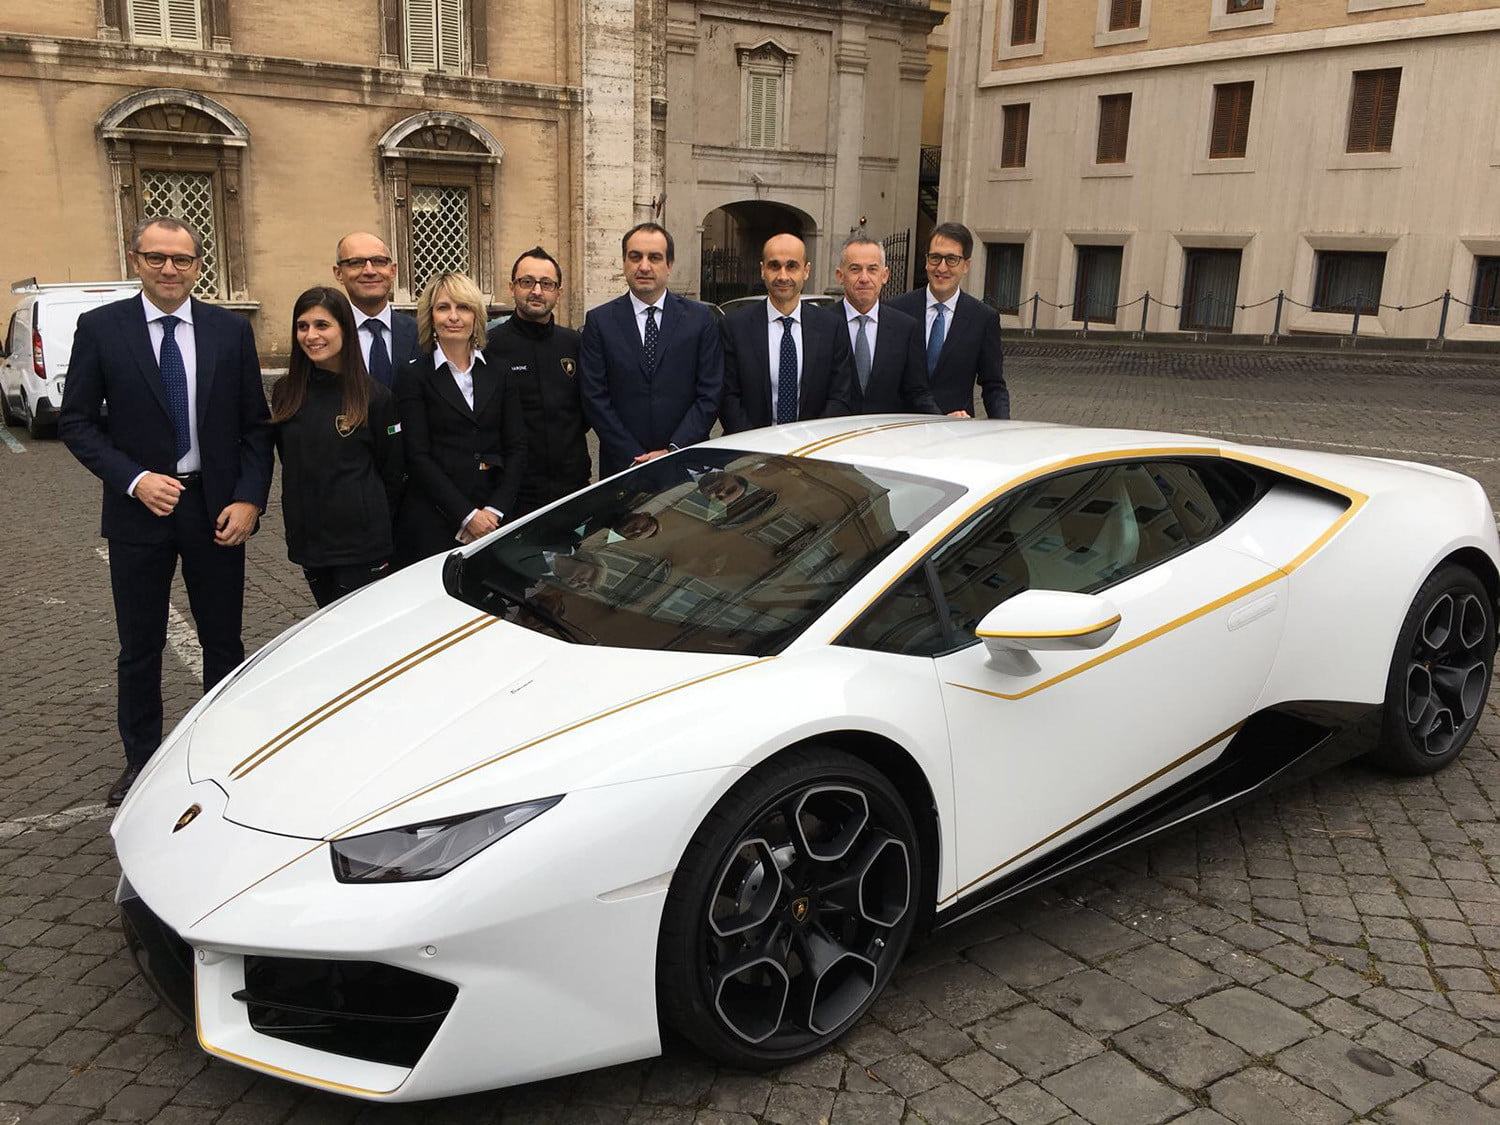 lamborghini gifts huracn lp580 2 to pope francis for charity 2017  digitaltrends gets a huracan 15